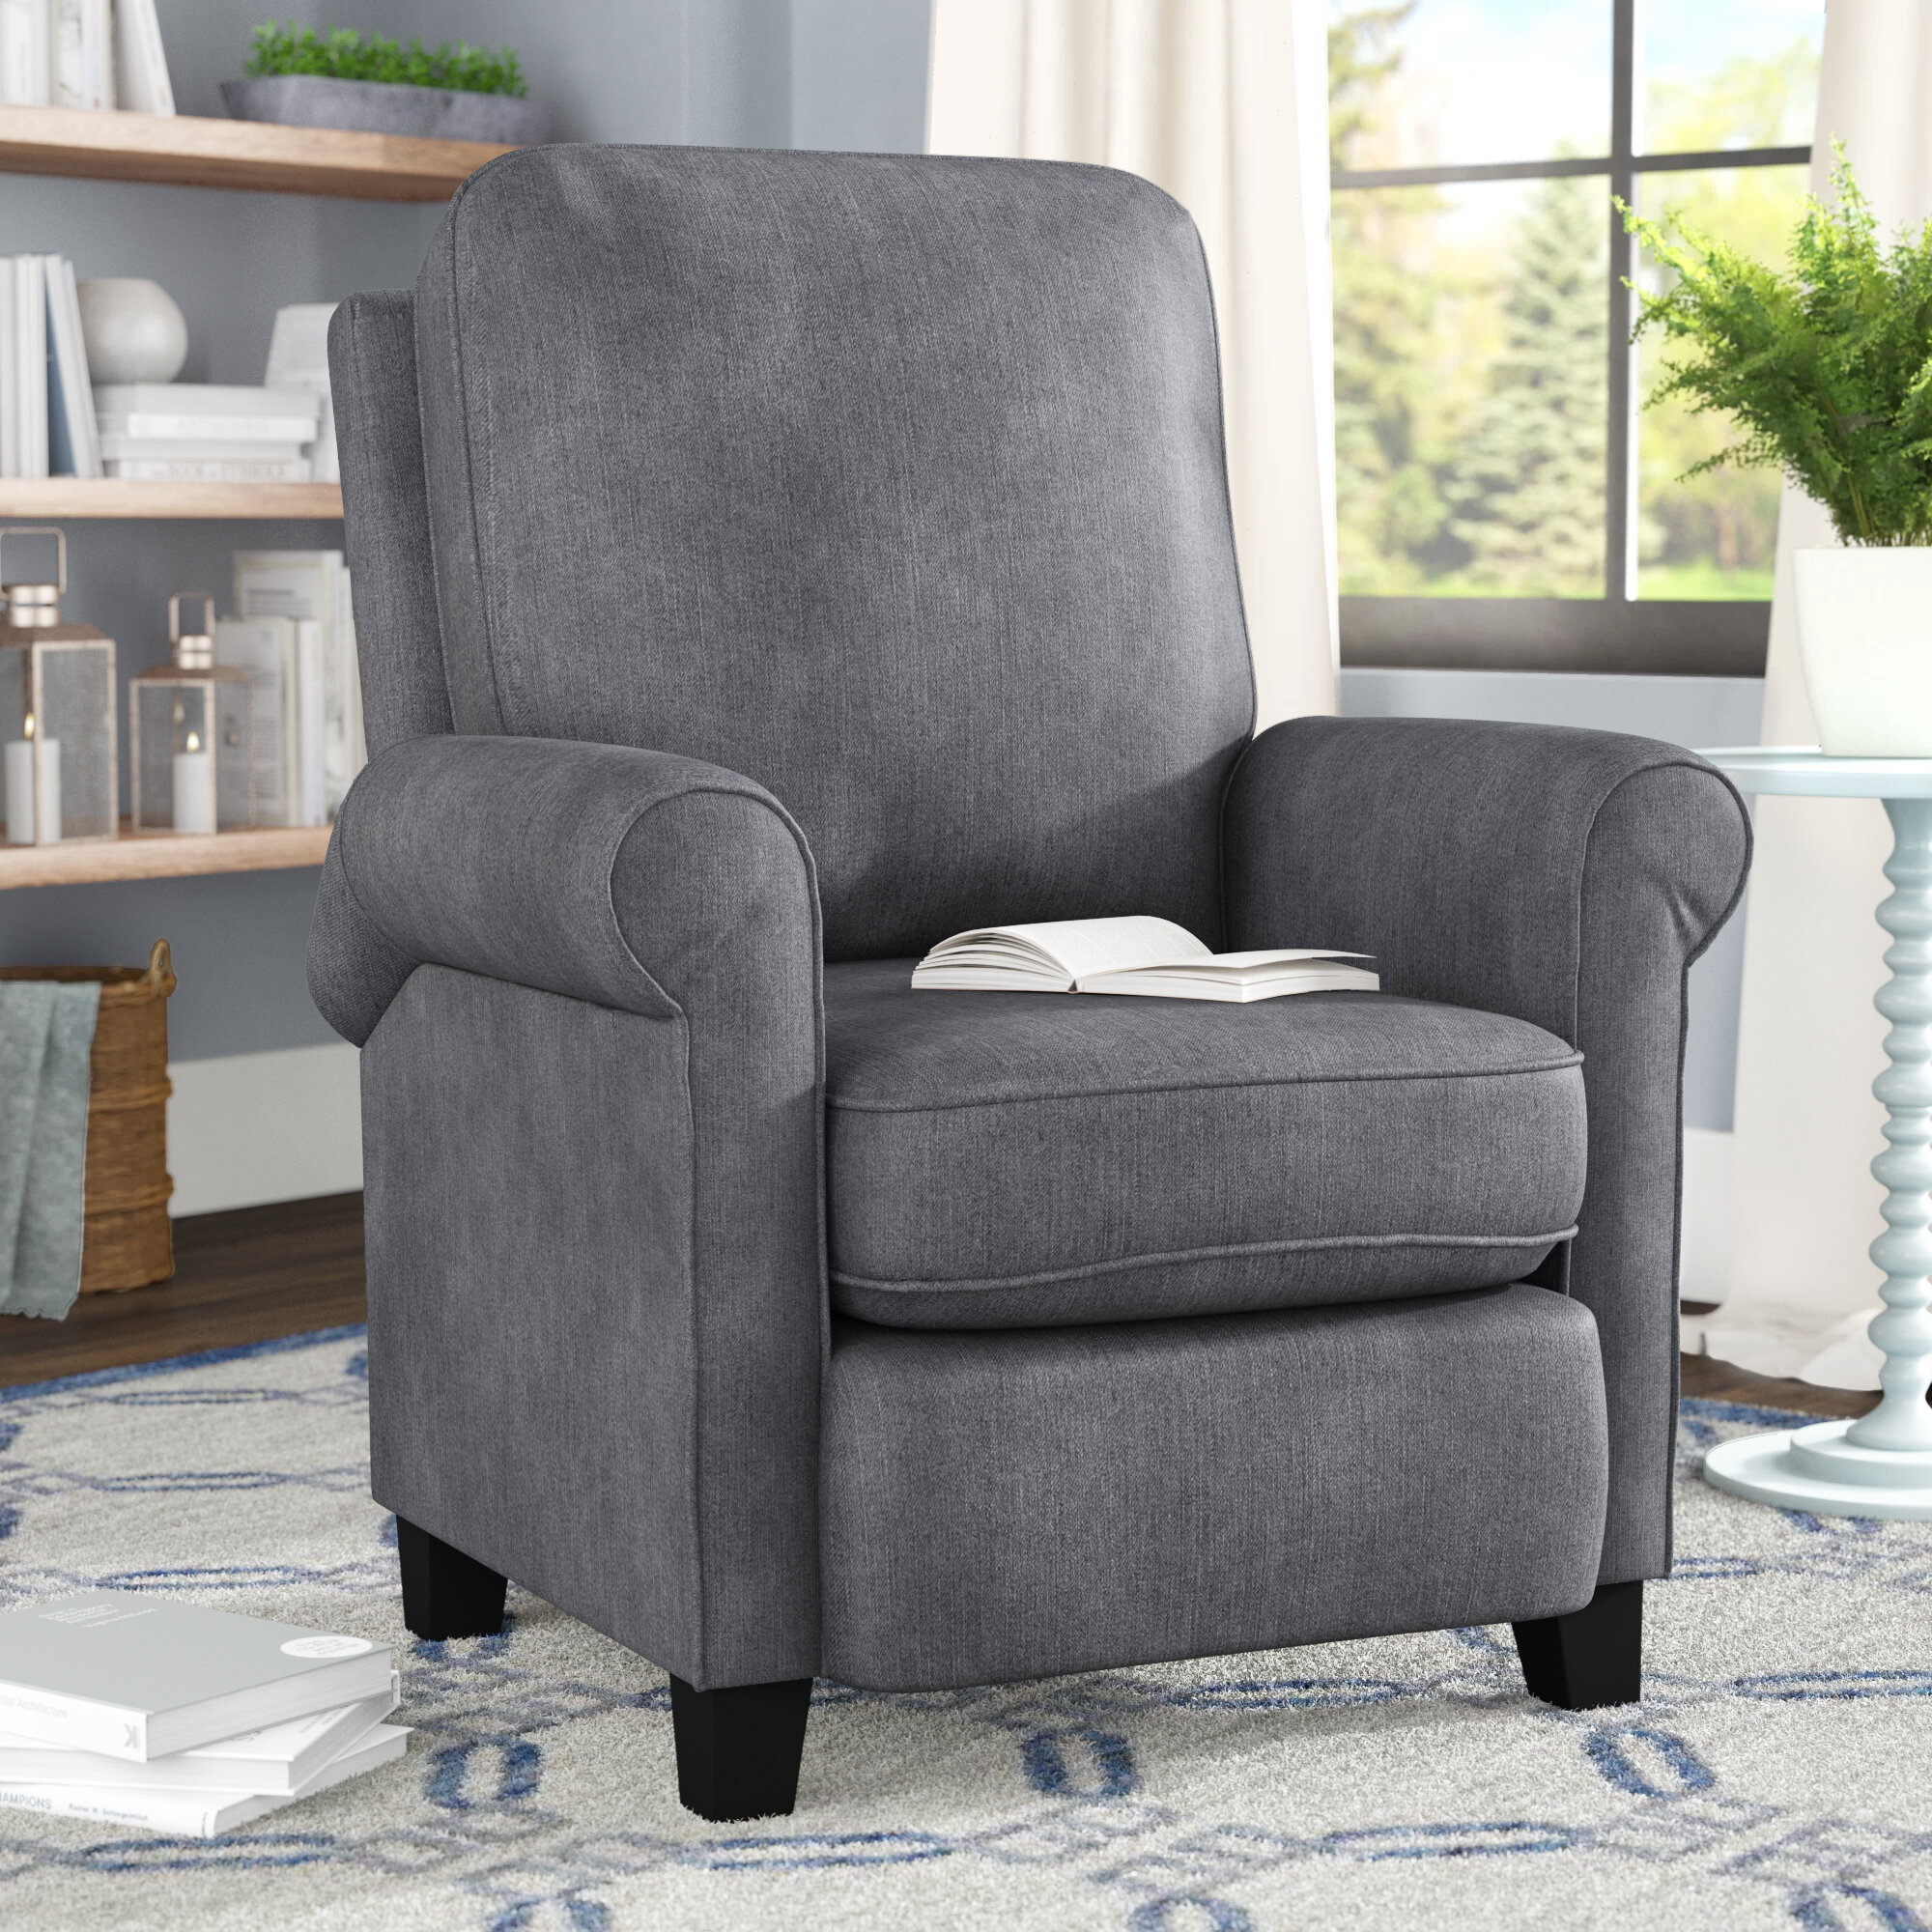 Winston porter bonzy manual recliner modern arm push back chair with roll tight armrest seat cushions living room reclining chair blue grey reviews